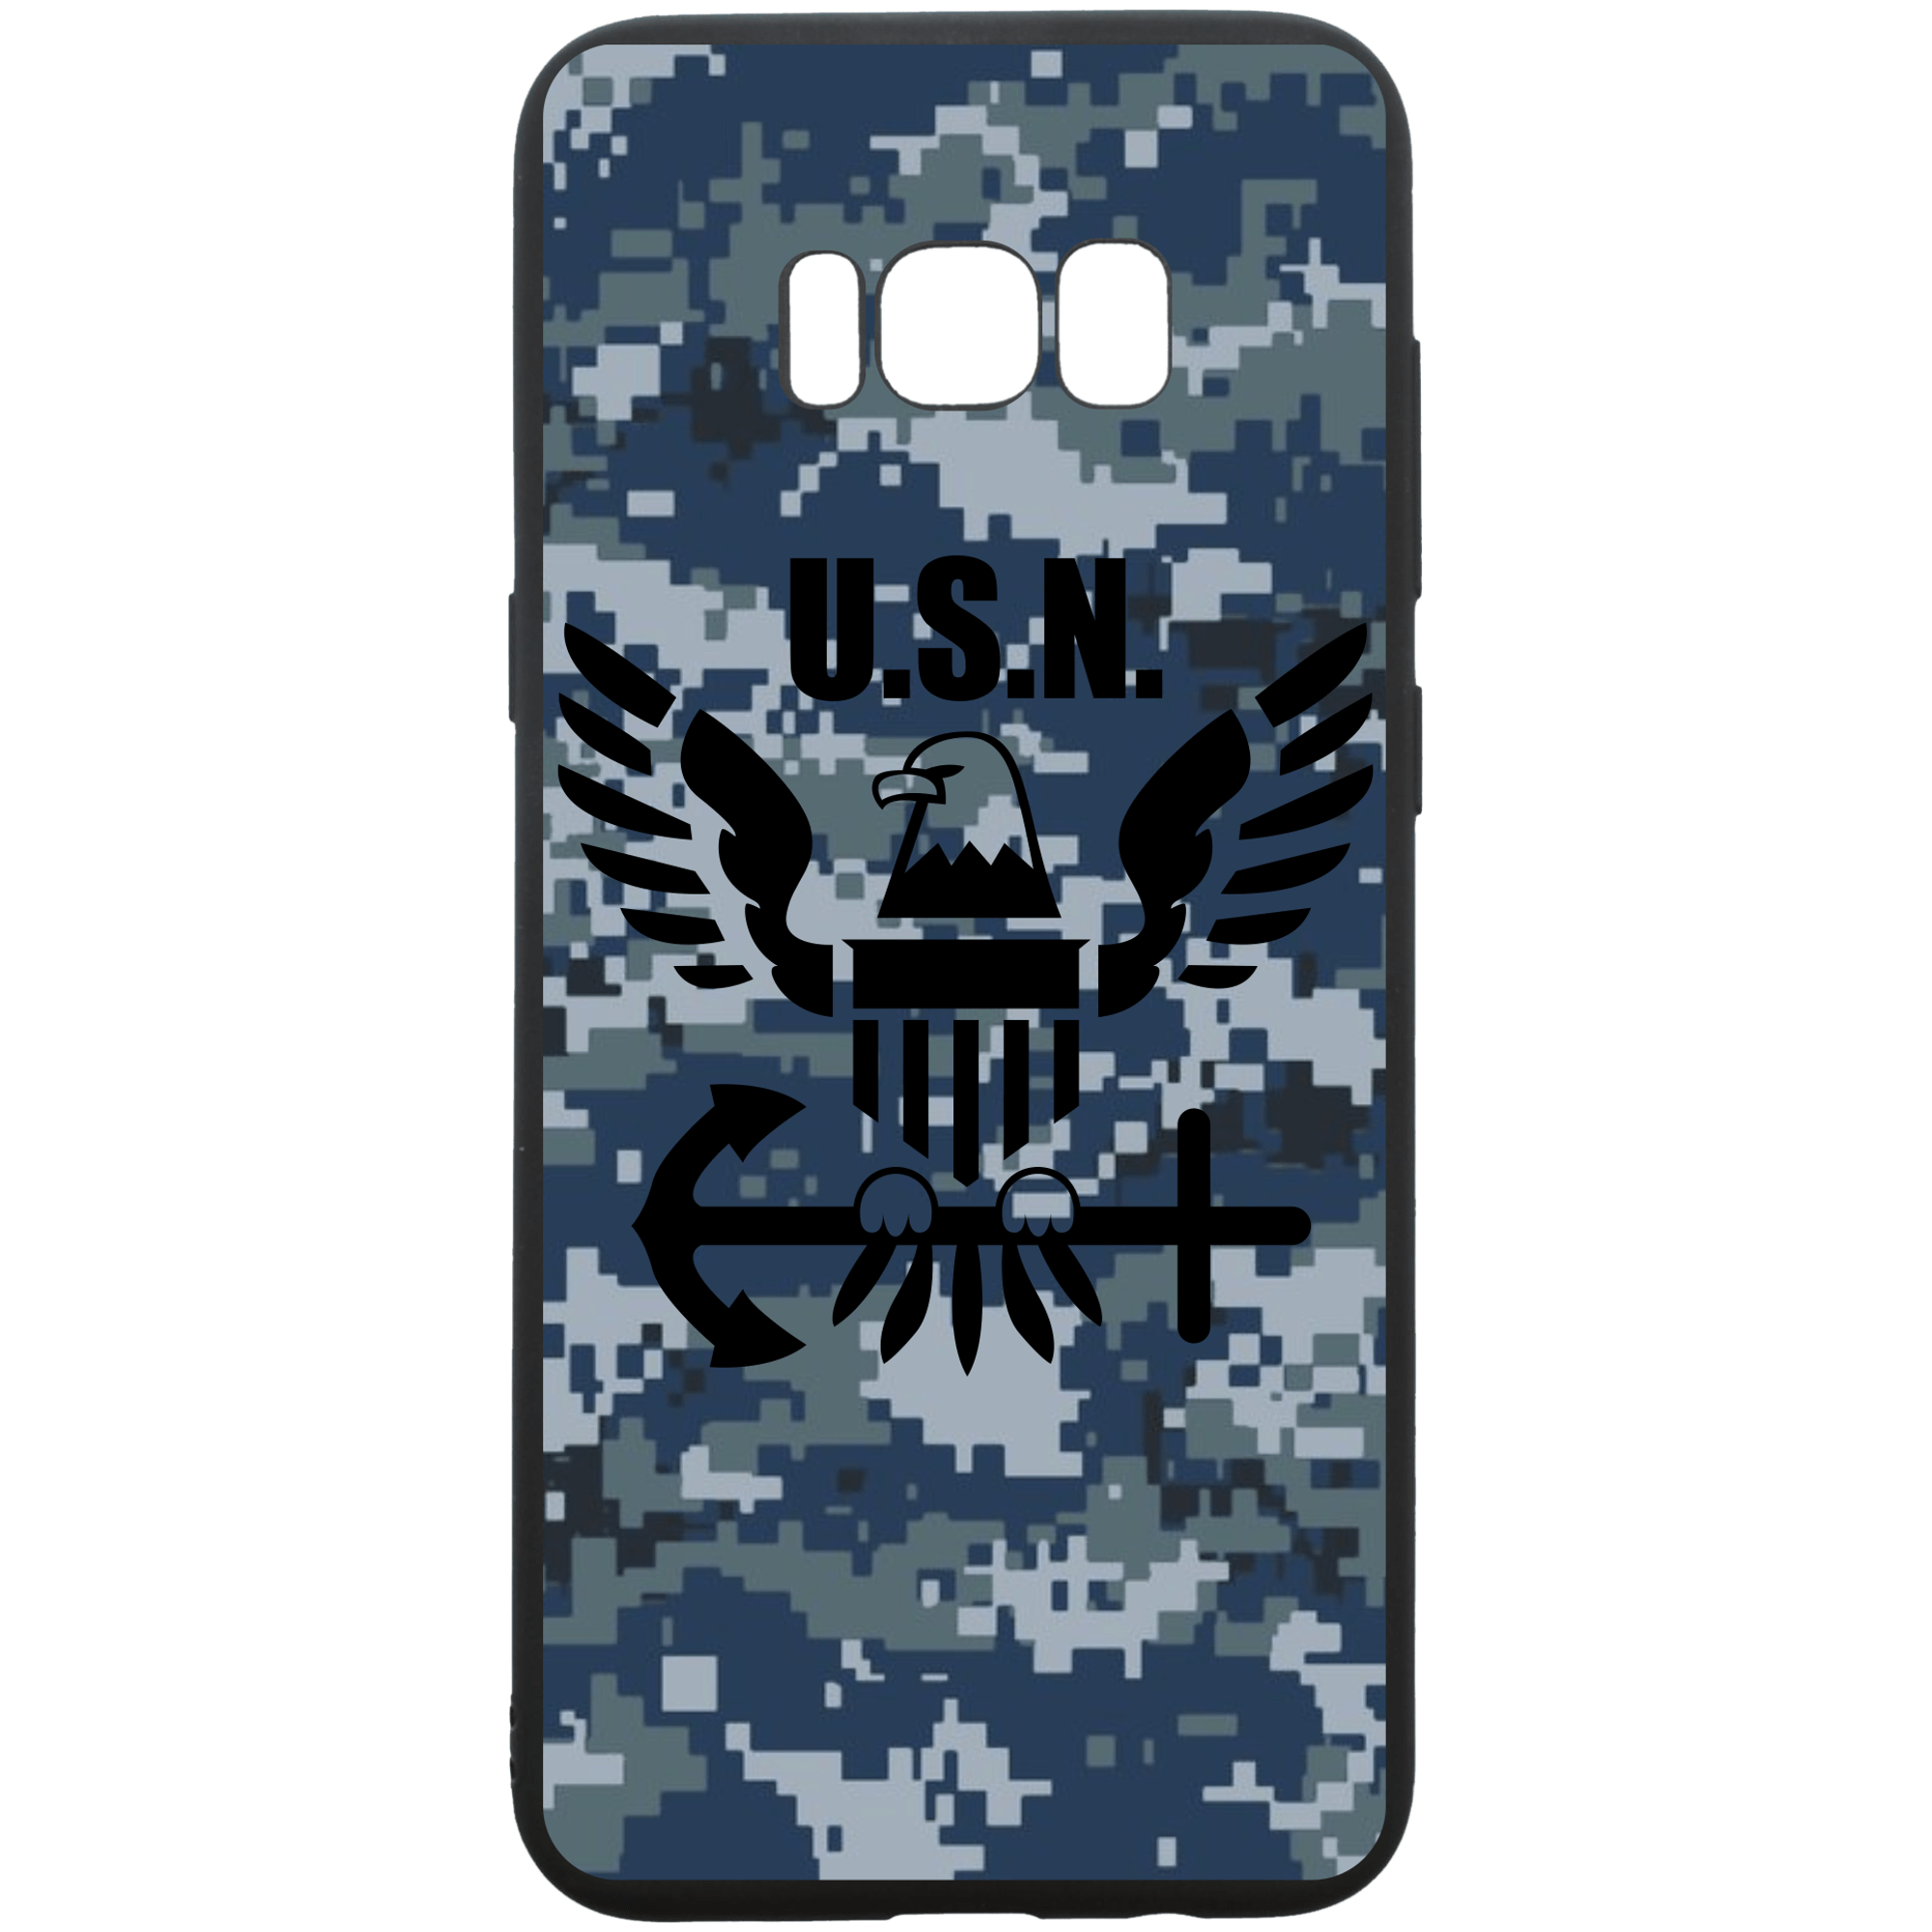 US Navy Logo - Smartphone Case - Choose Your Phone